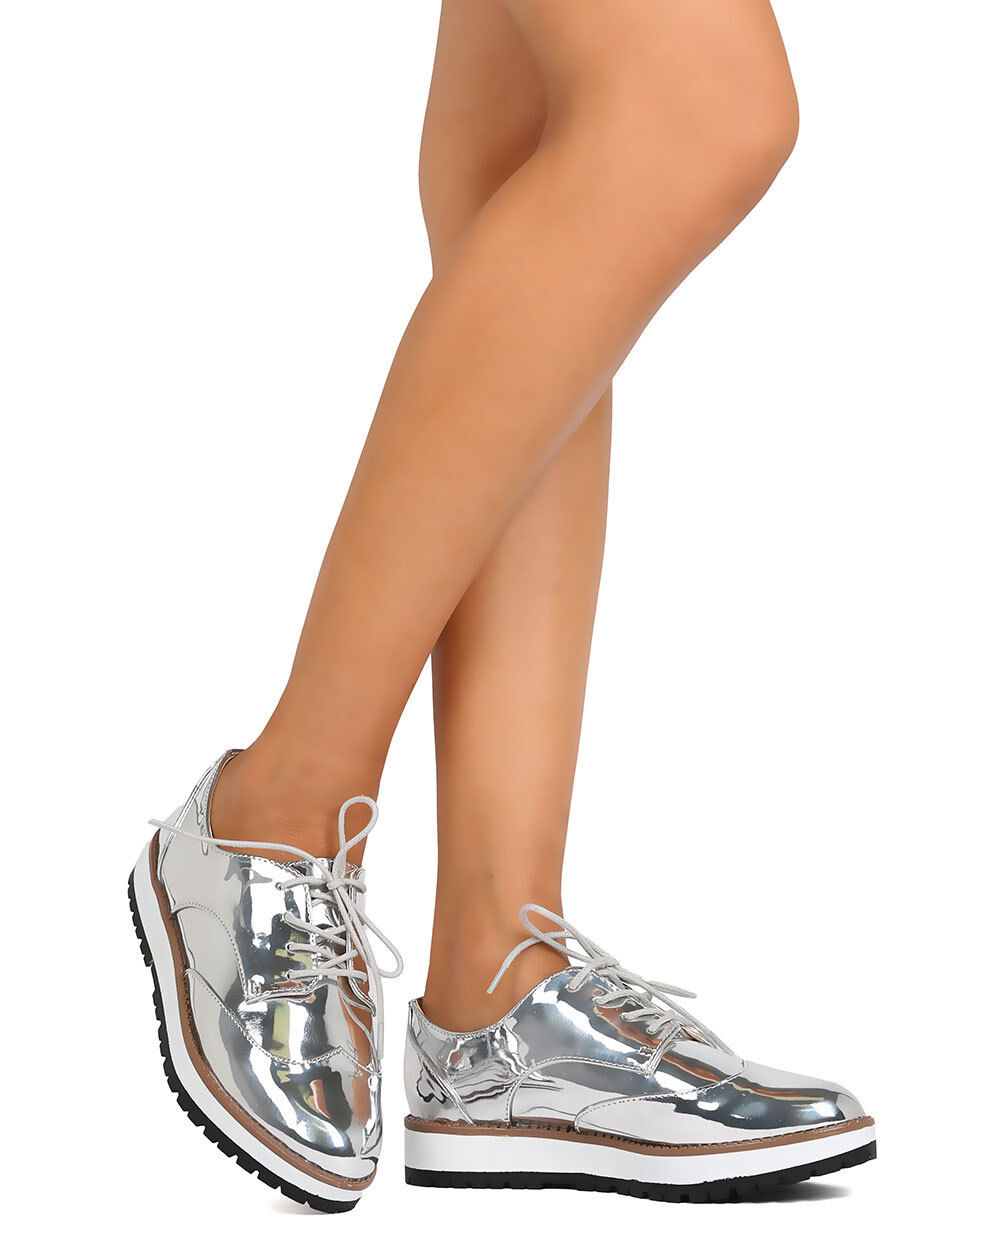 New Women Qupid Newbie-15 Metallic Leatherette Lace Up Spectator Loafer